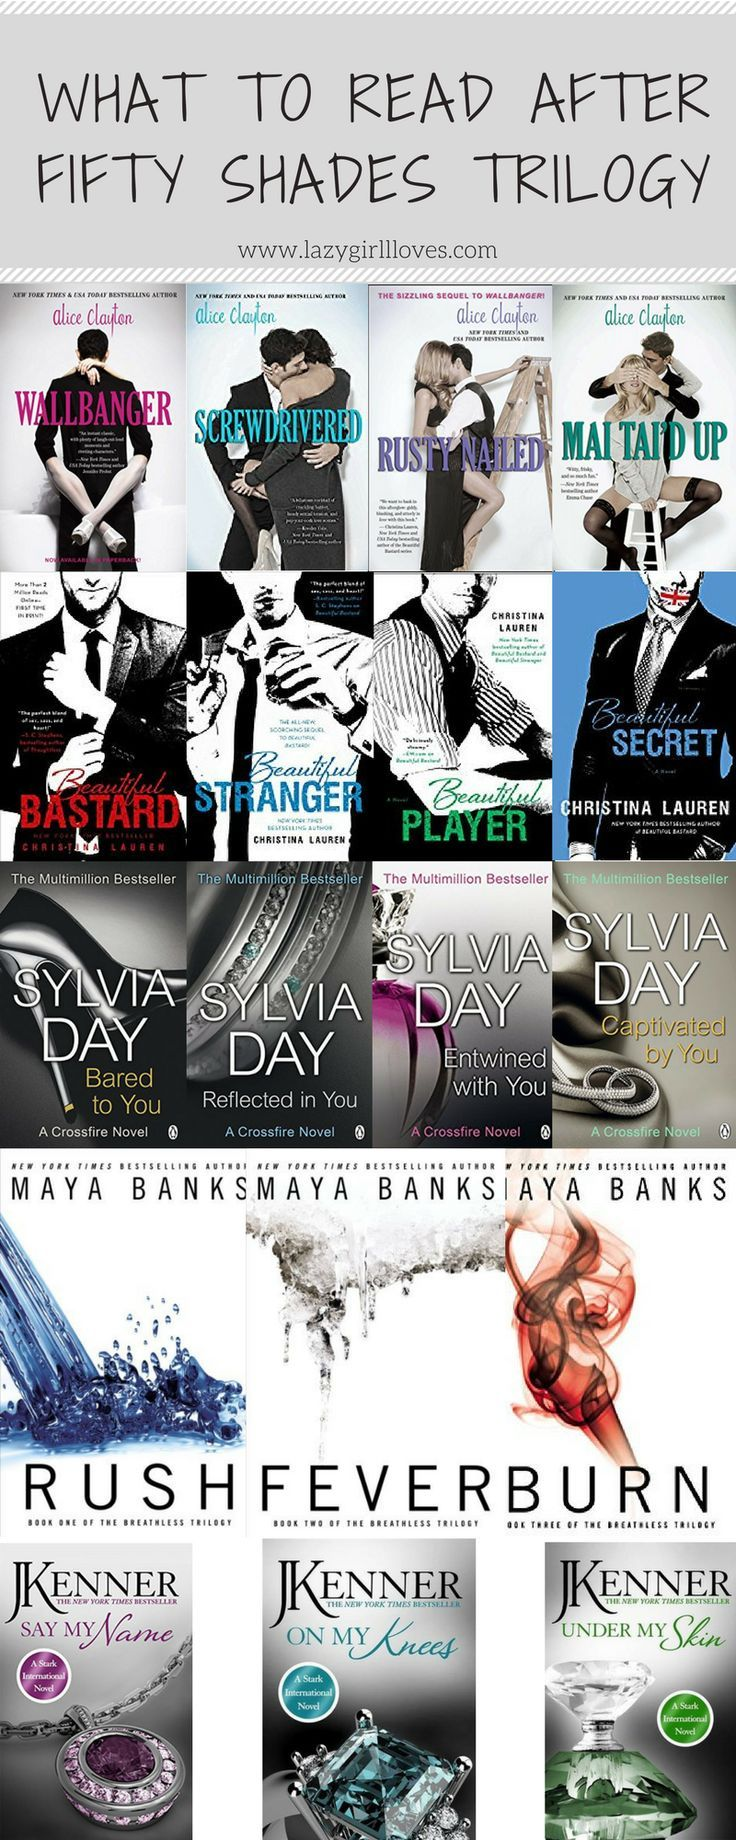 If like me you inhaled the Fifty Shades of Grey series then have I got the ultimate book list for you. In preparation for the release of fifty shades Freed, I thought this would be a great opportunity to take a look at a few of the series that are perfect for fans of Fifty Shades of Grey.